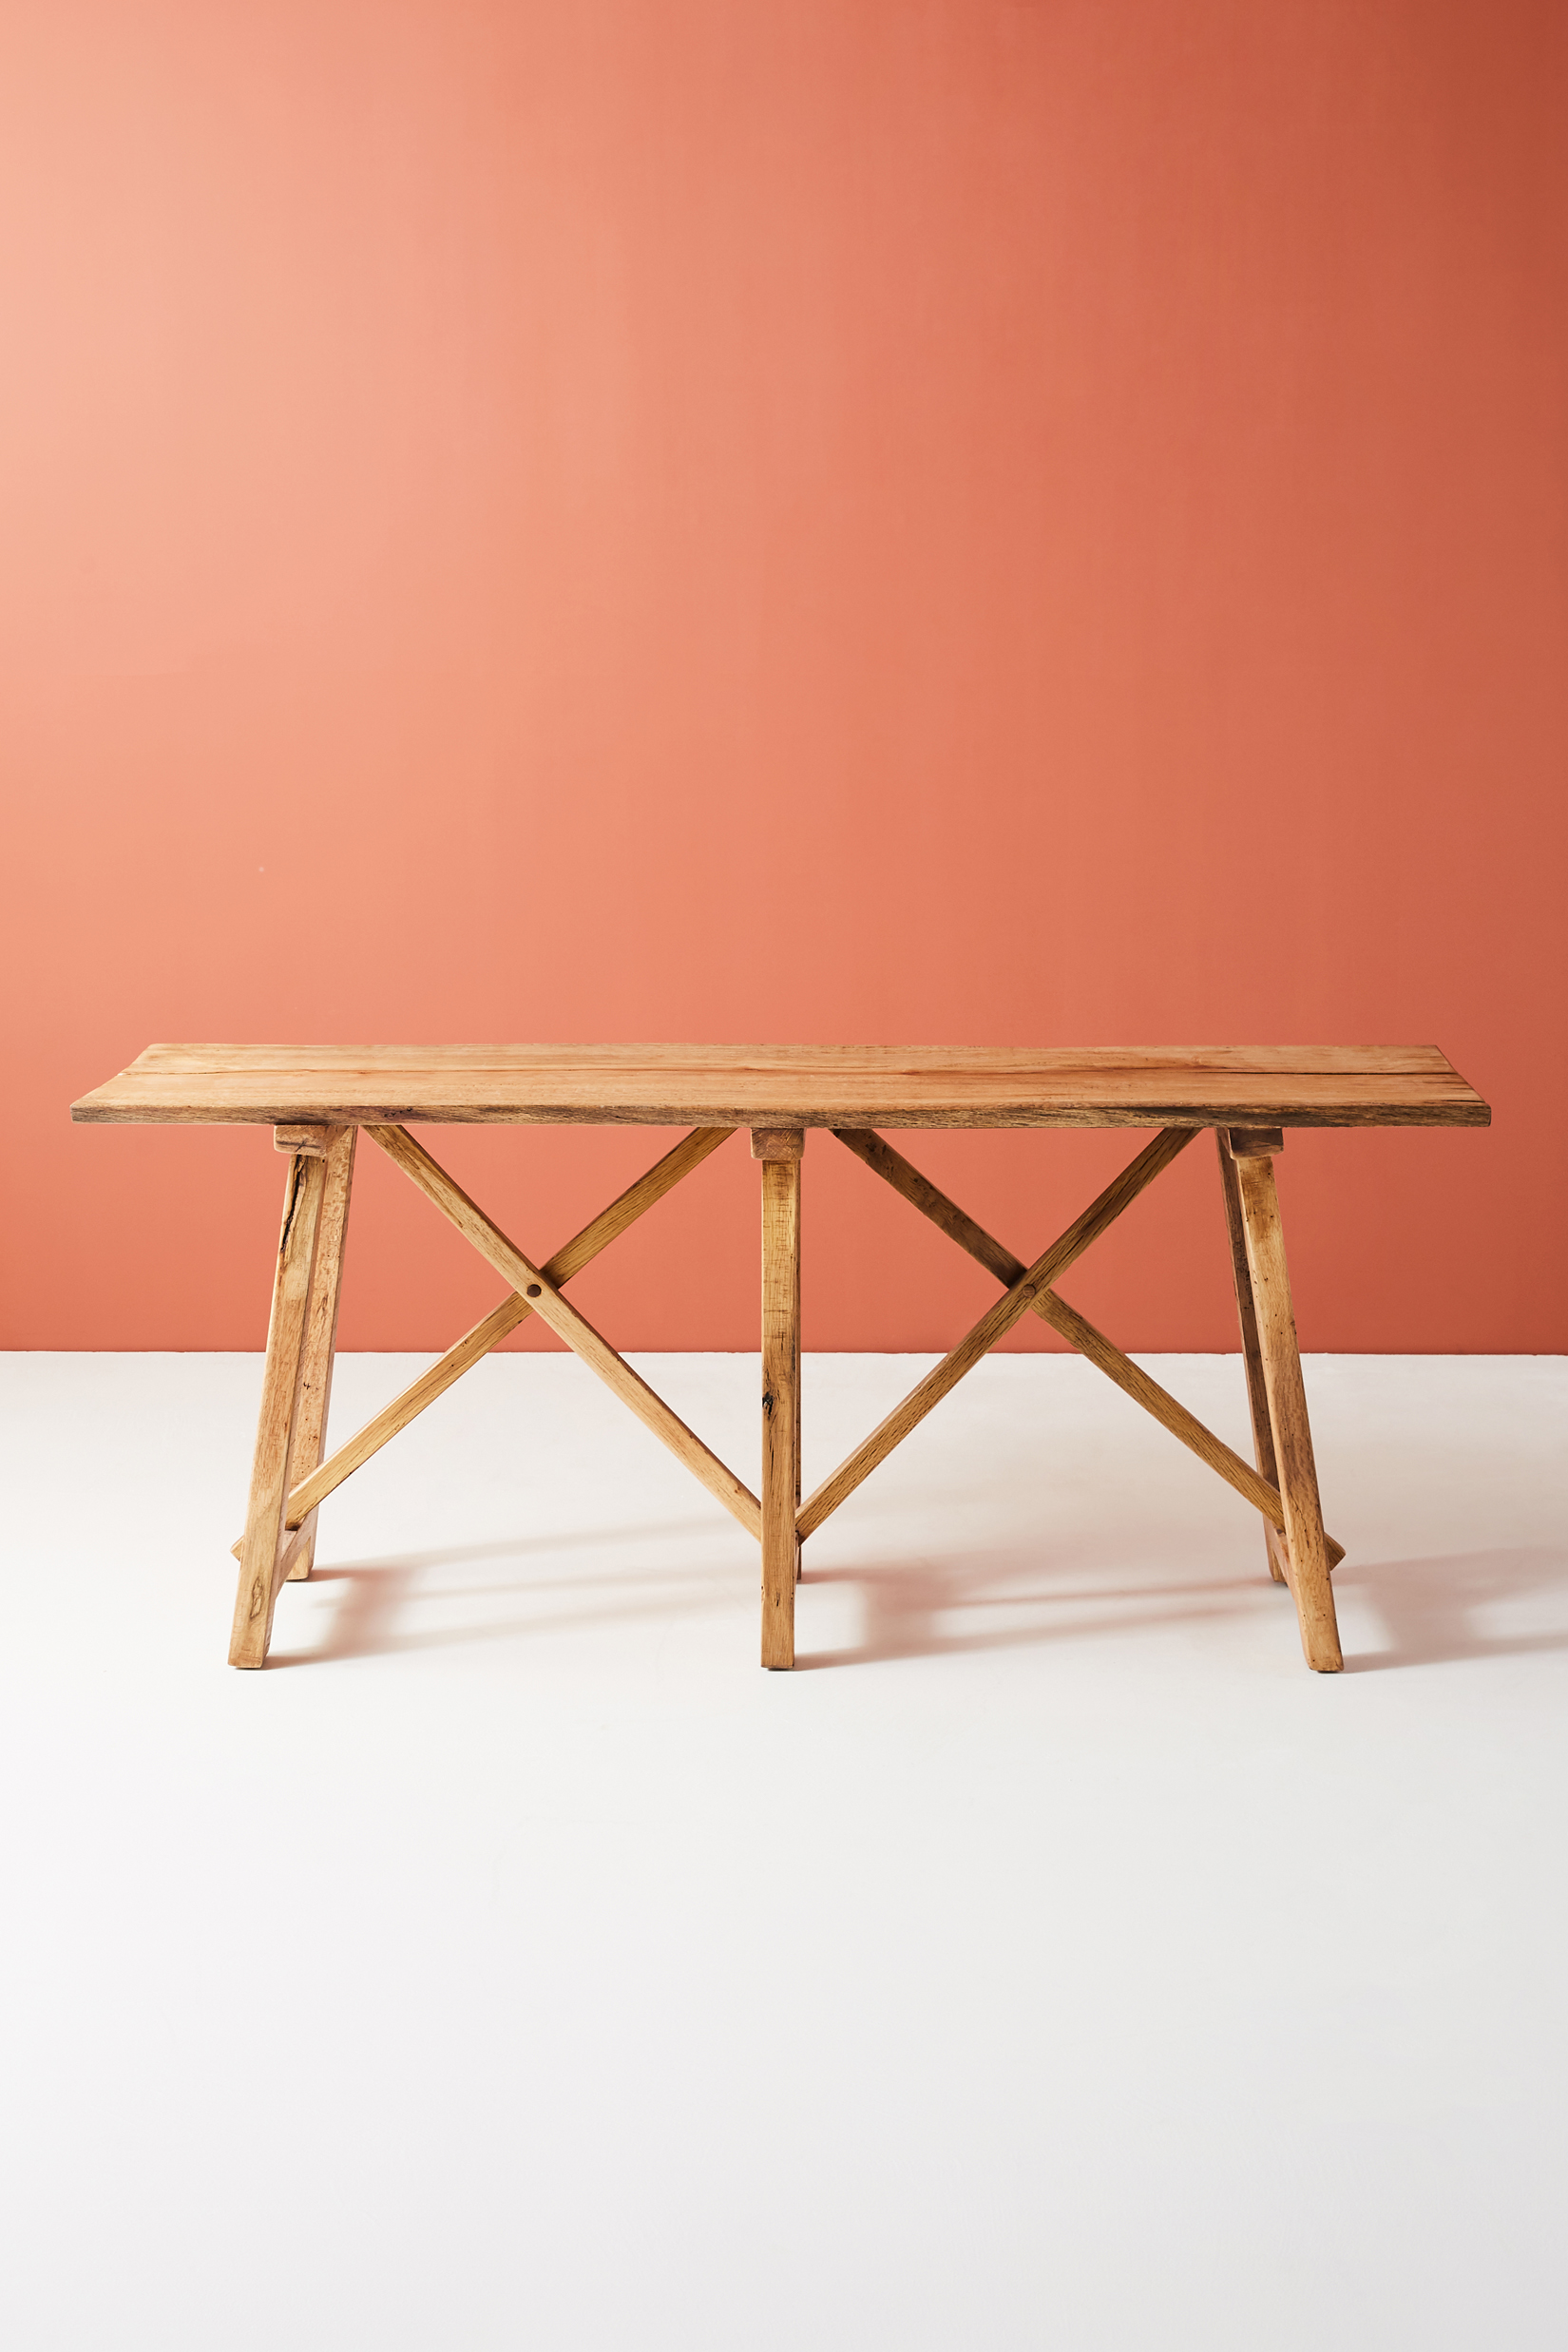 anthro-farmhouse-table-hbh-1018